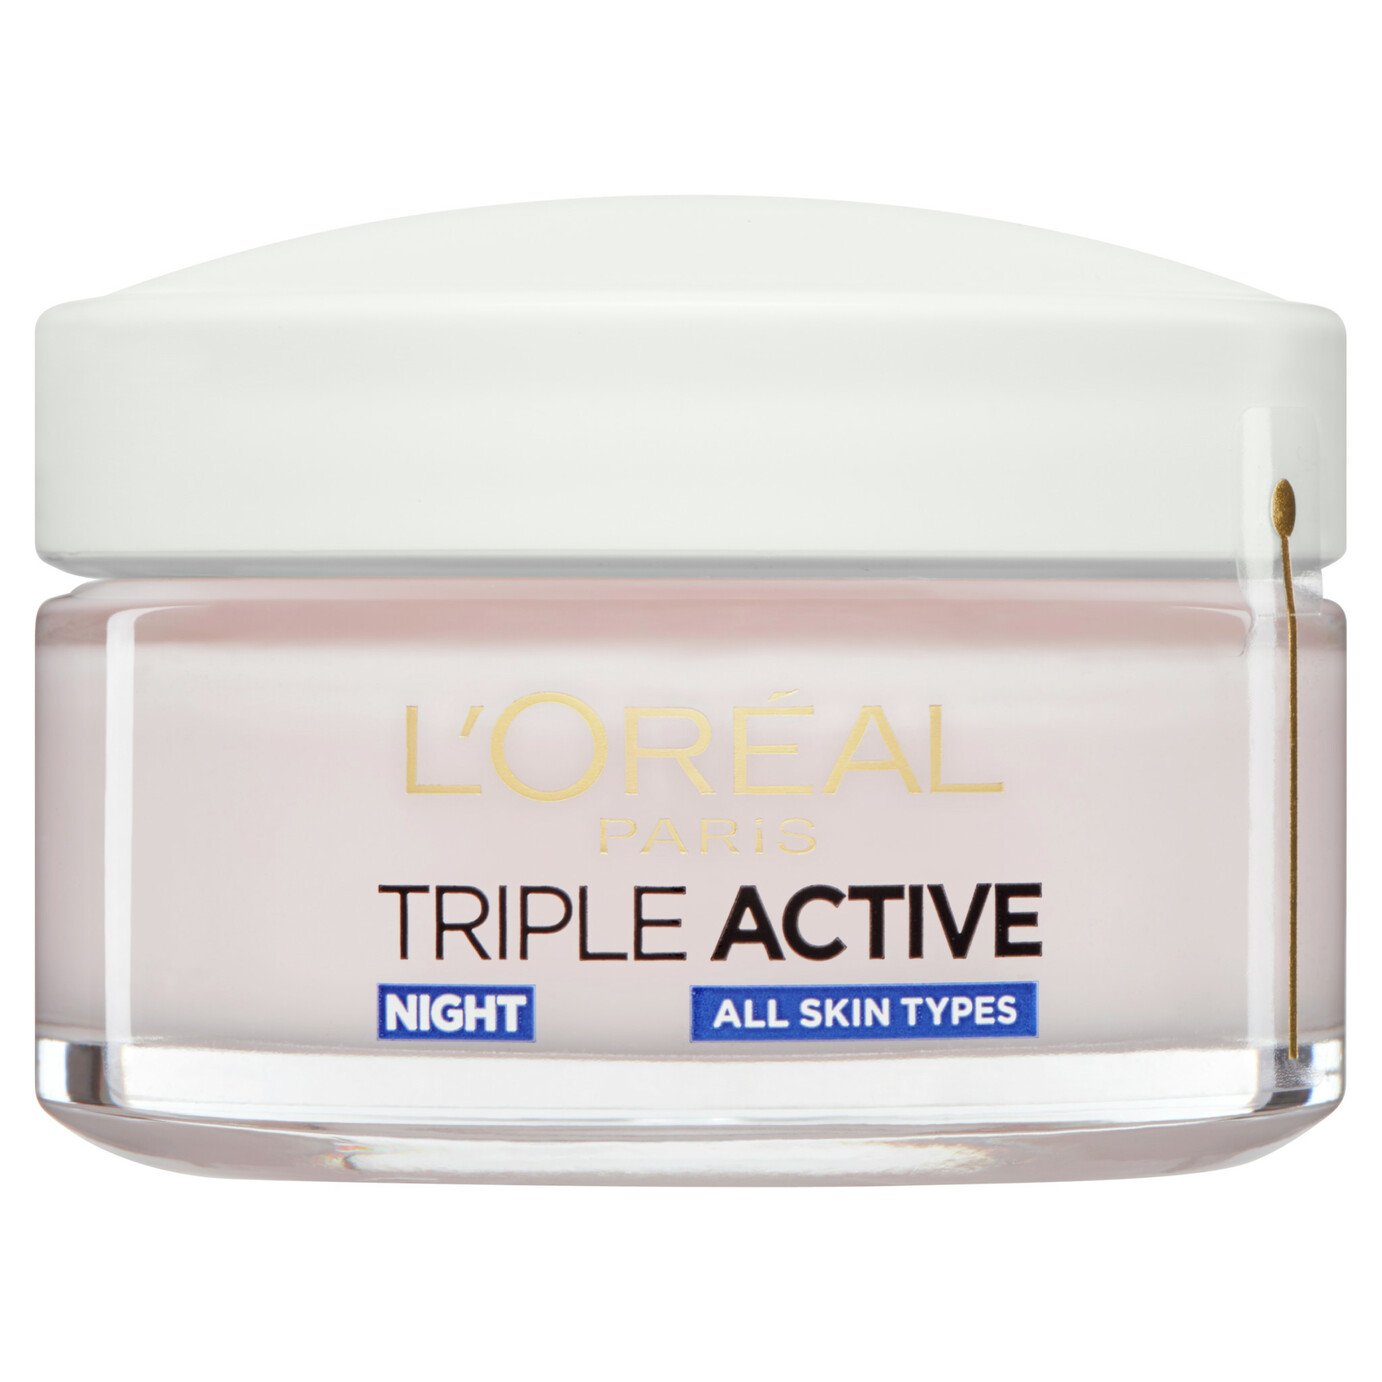 L'Oreal Paris Triple Active Night Moisturiser - 50ml